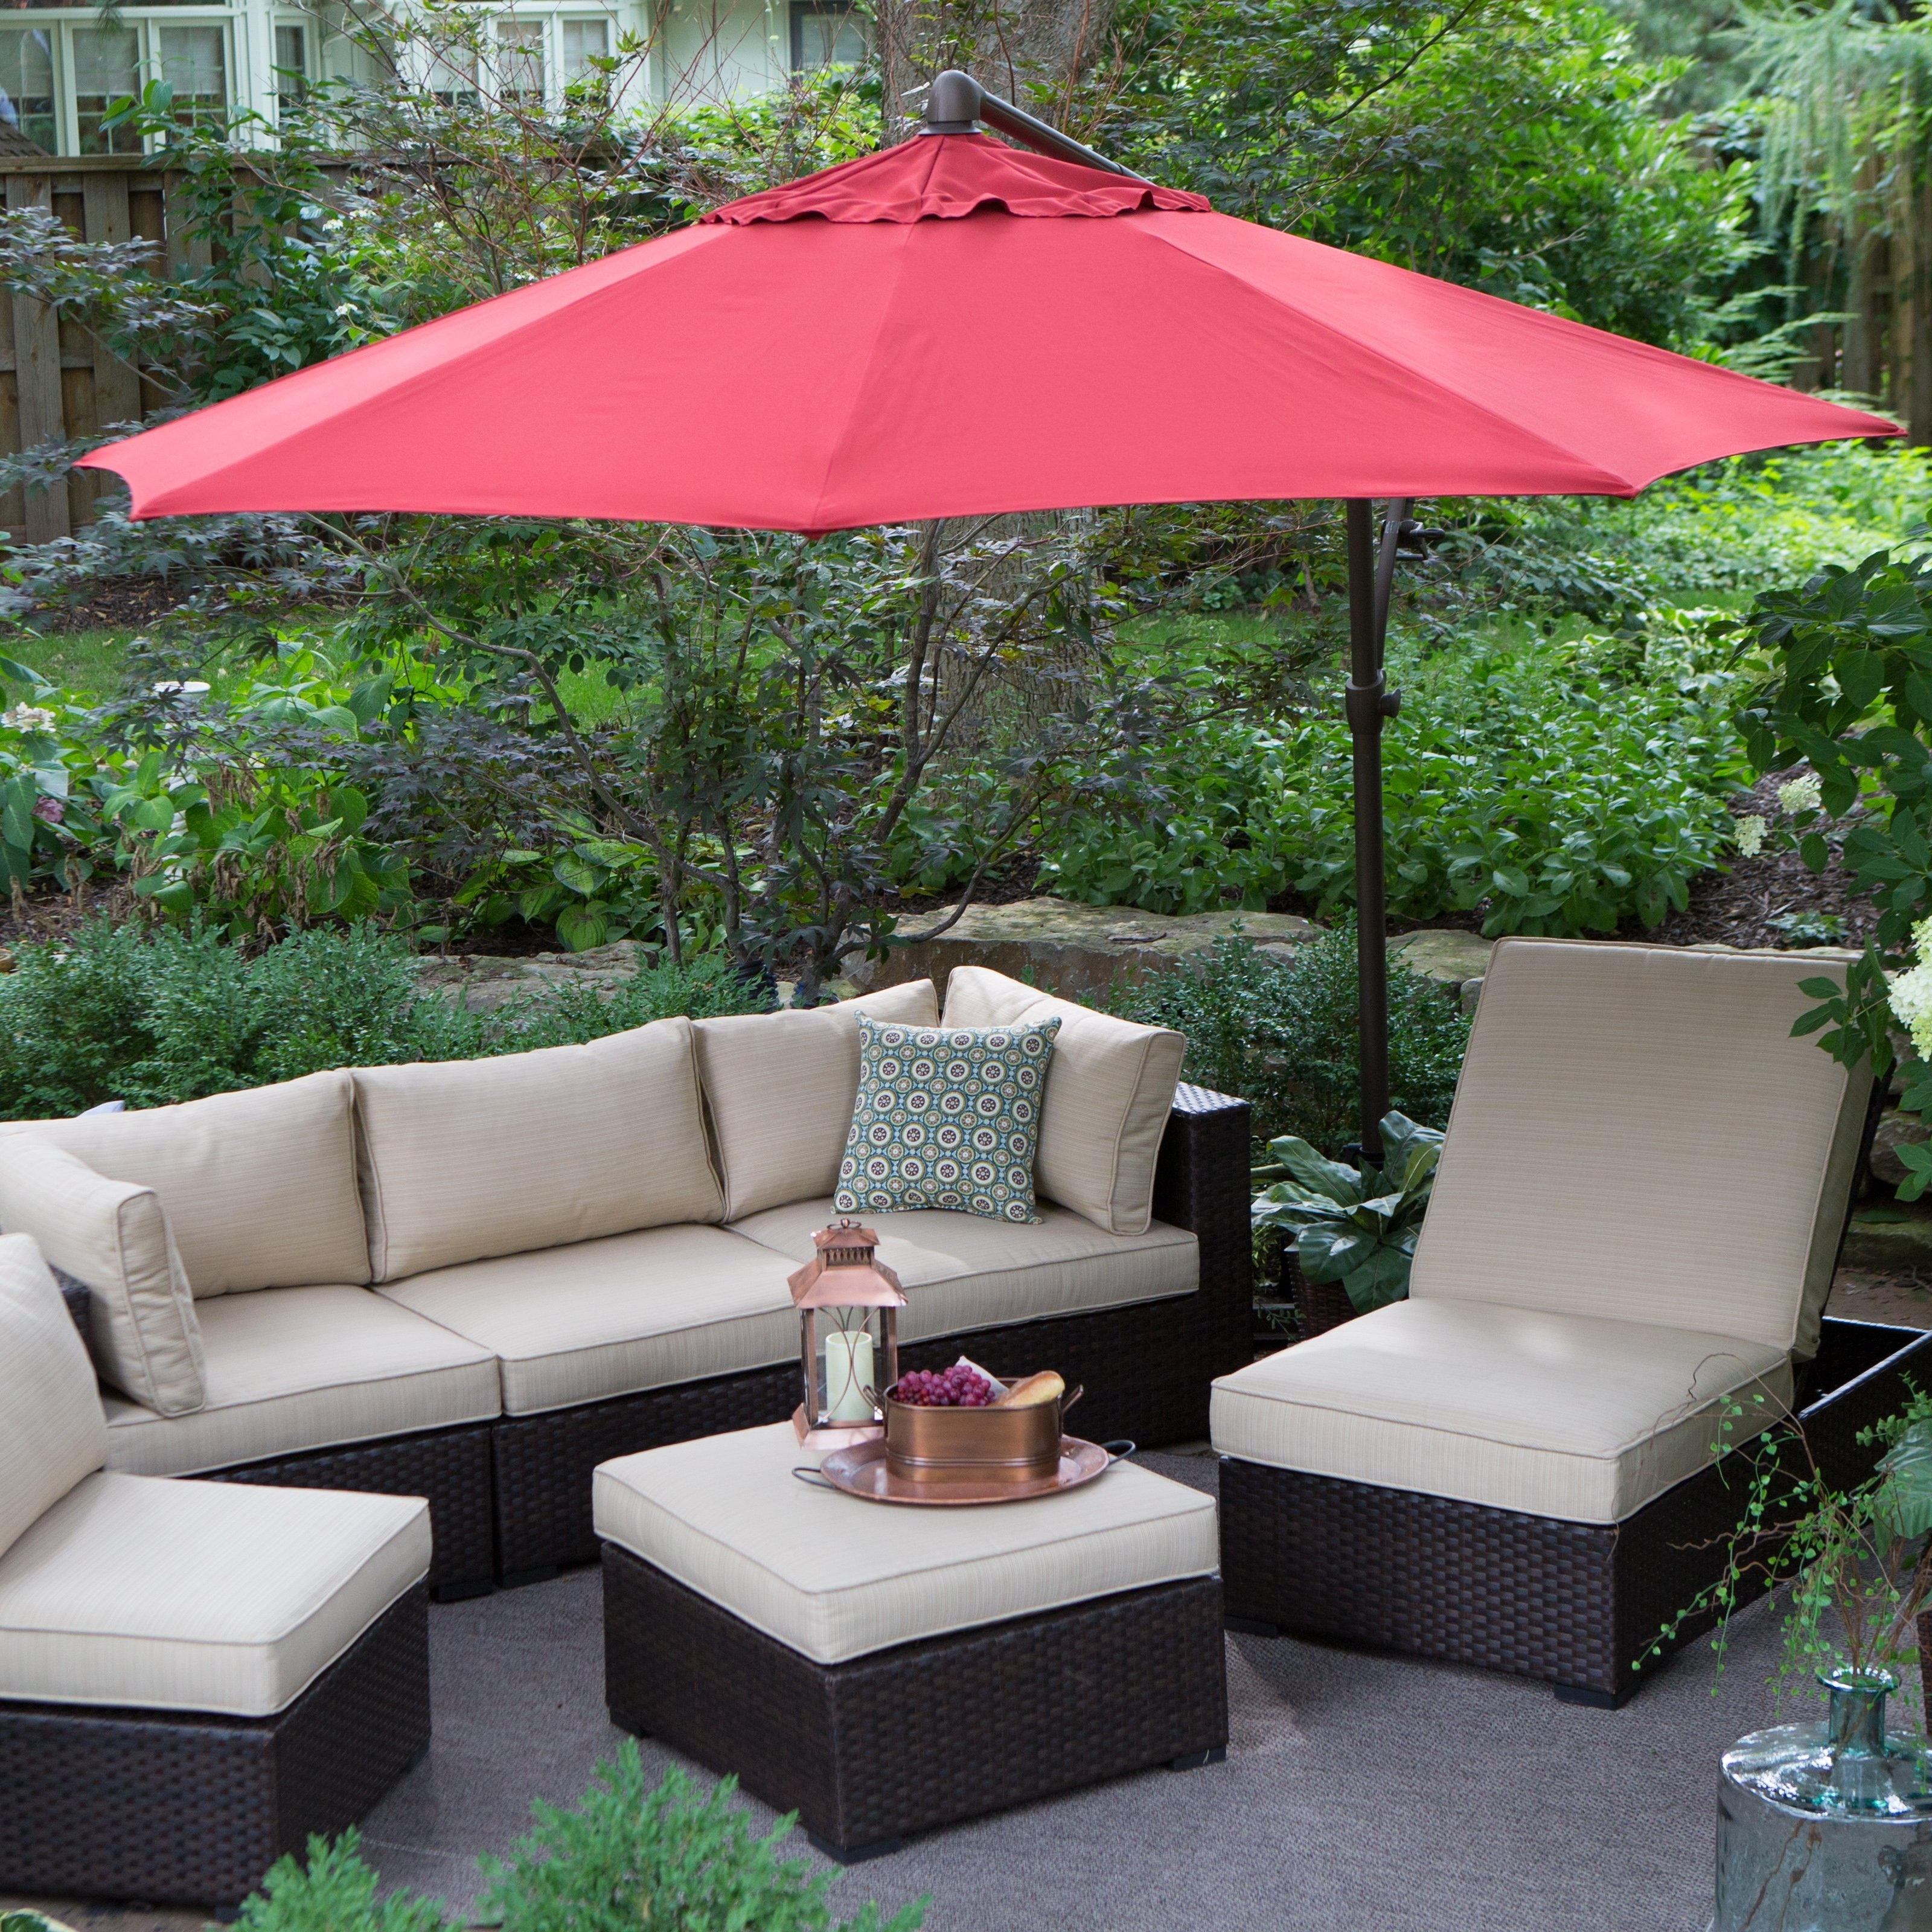 Most Popular Red Sunbrella Patio Umbrellas With Treasure Garden 6 Ft (View 10 of 20)